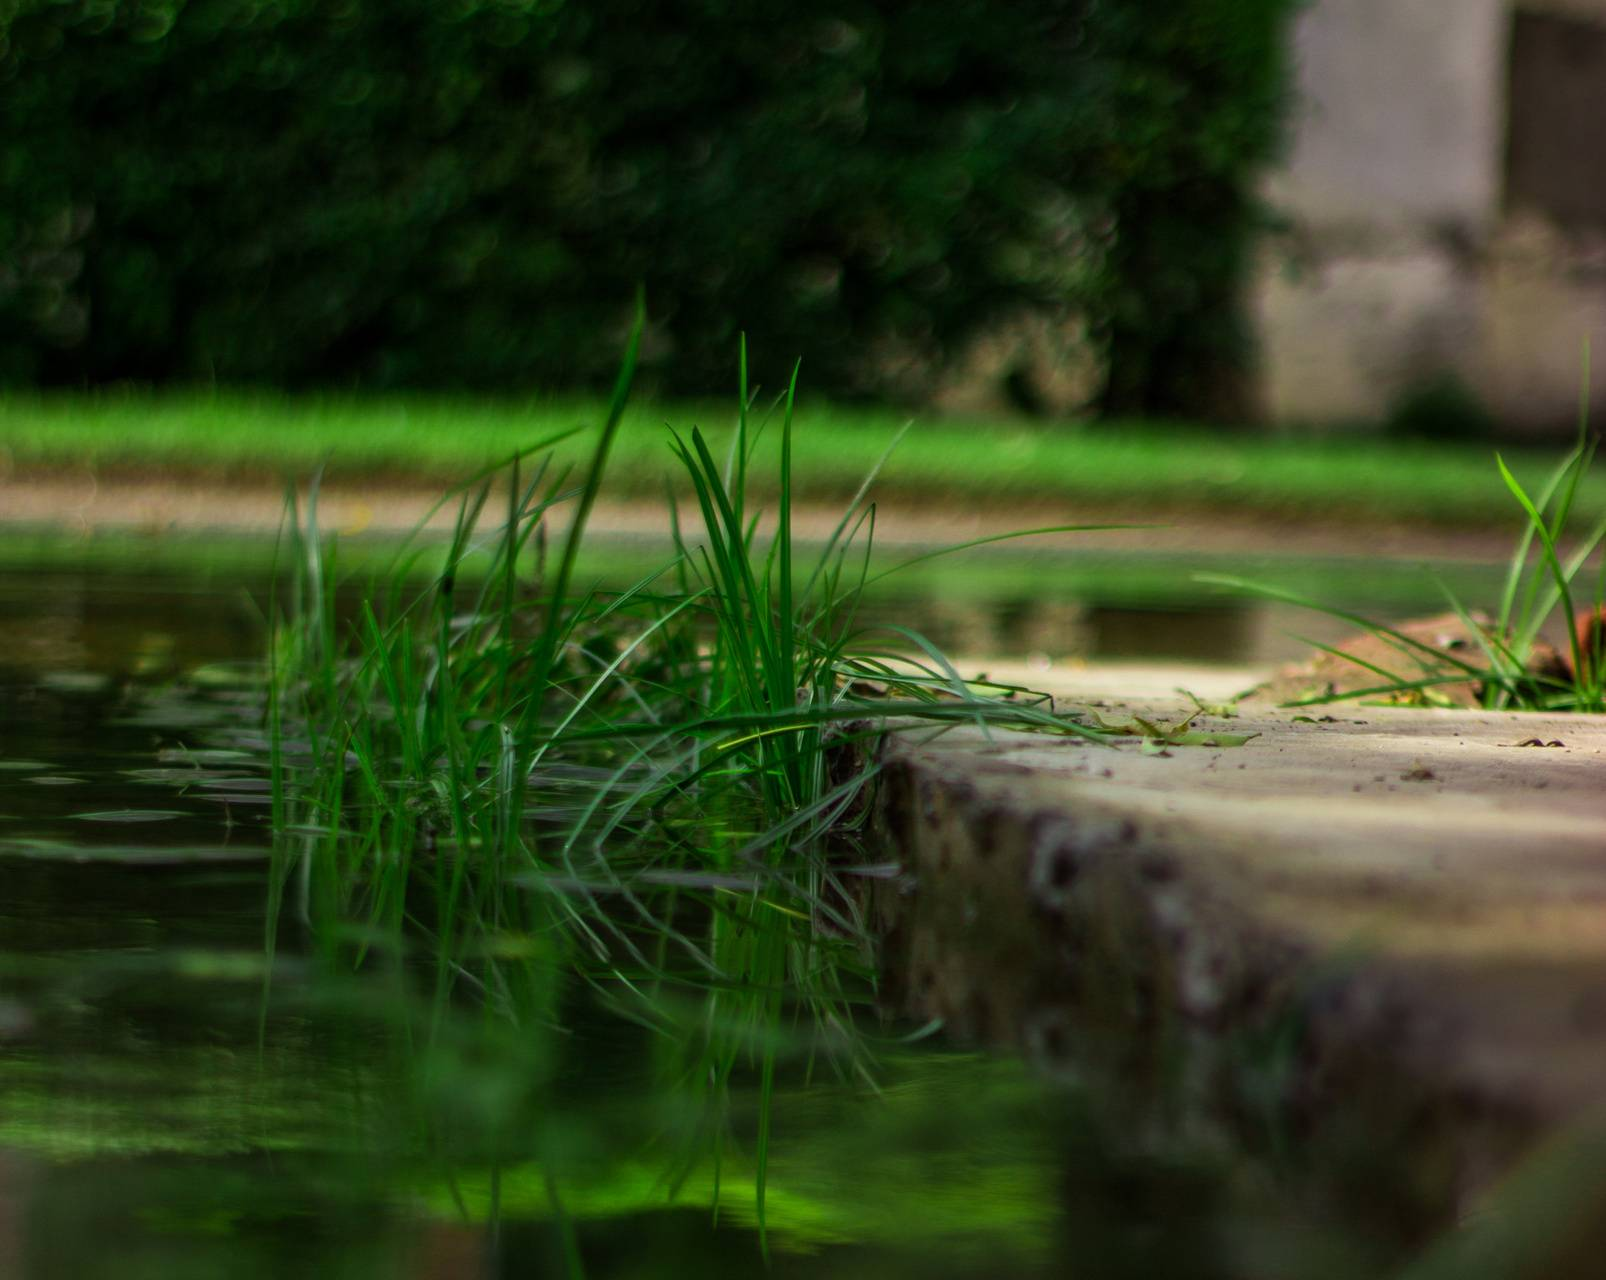 Grass in the water